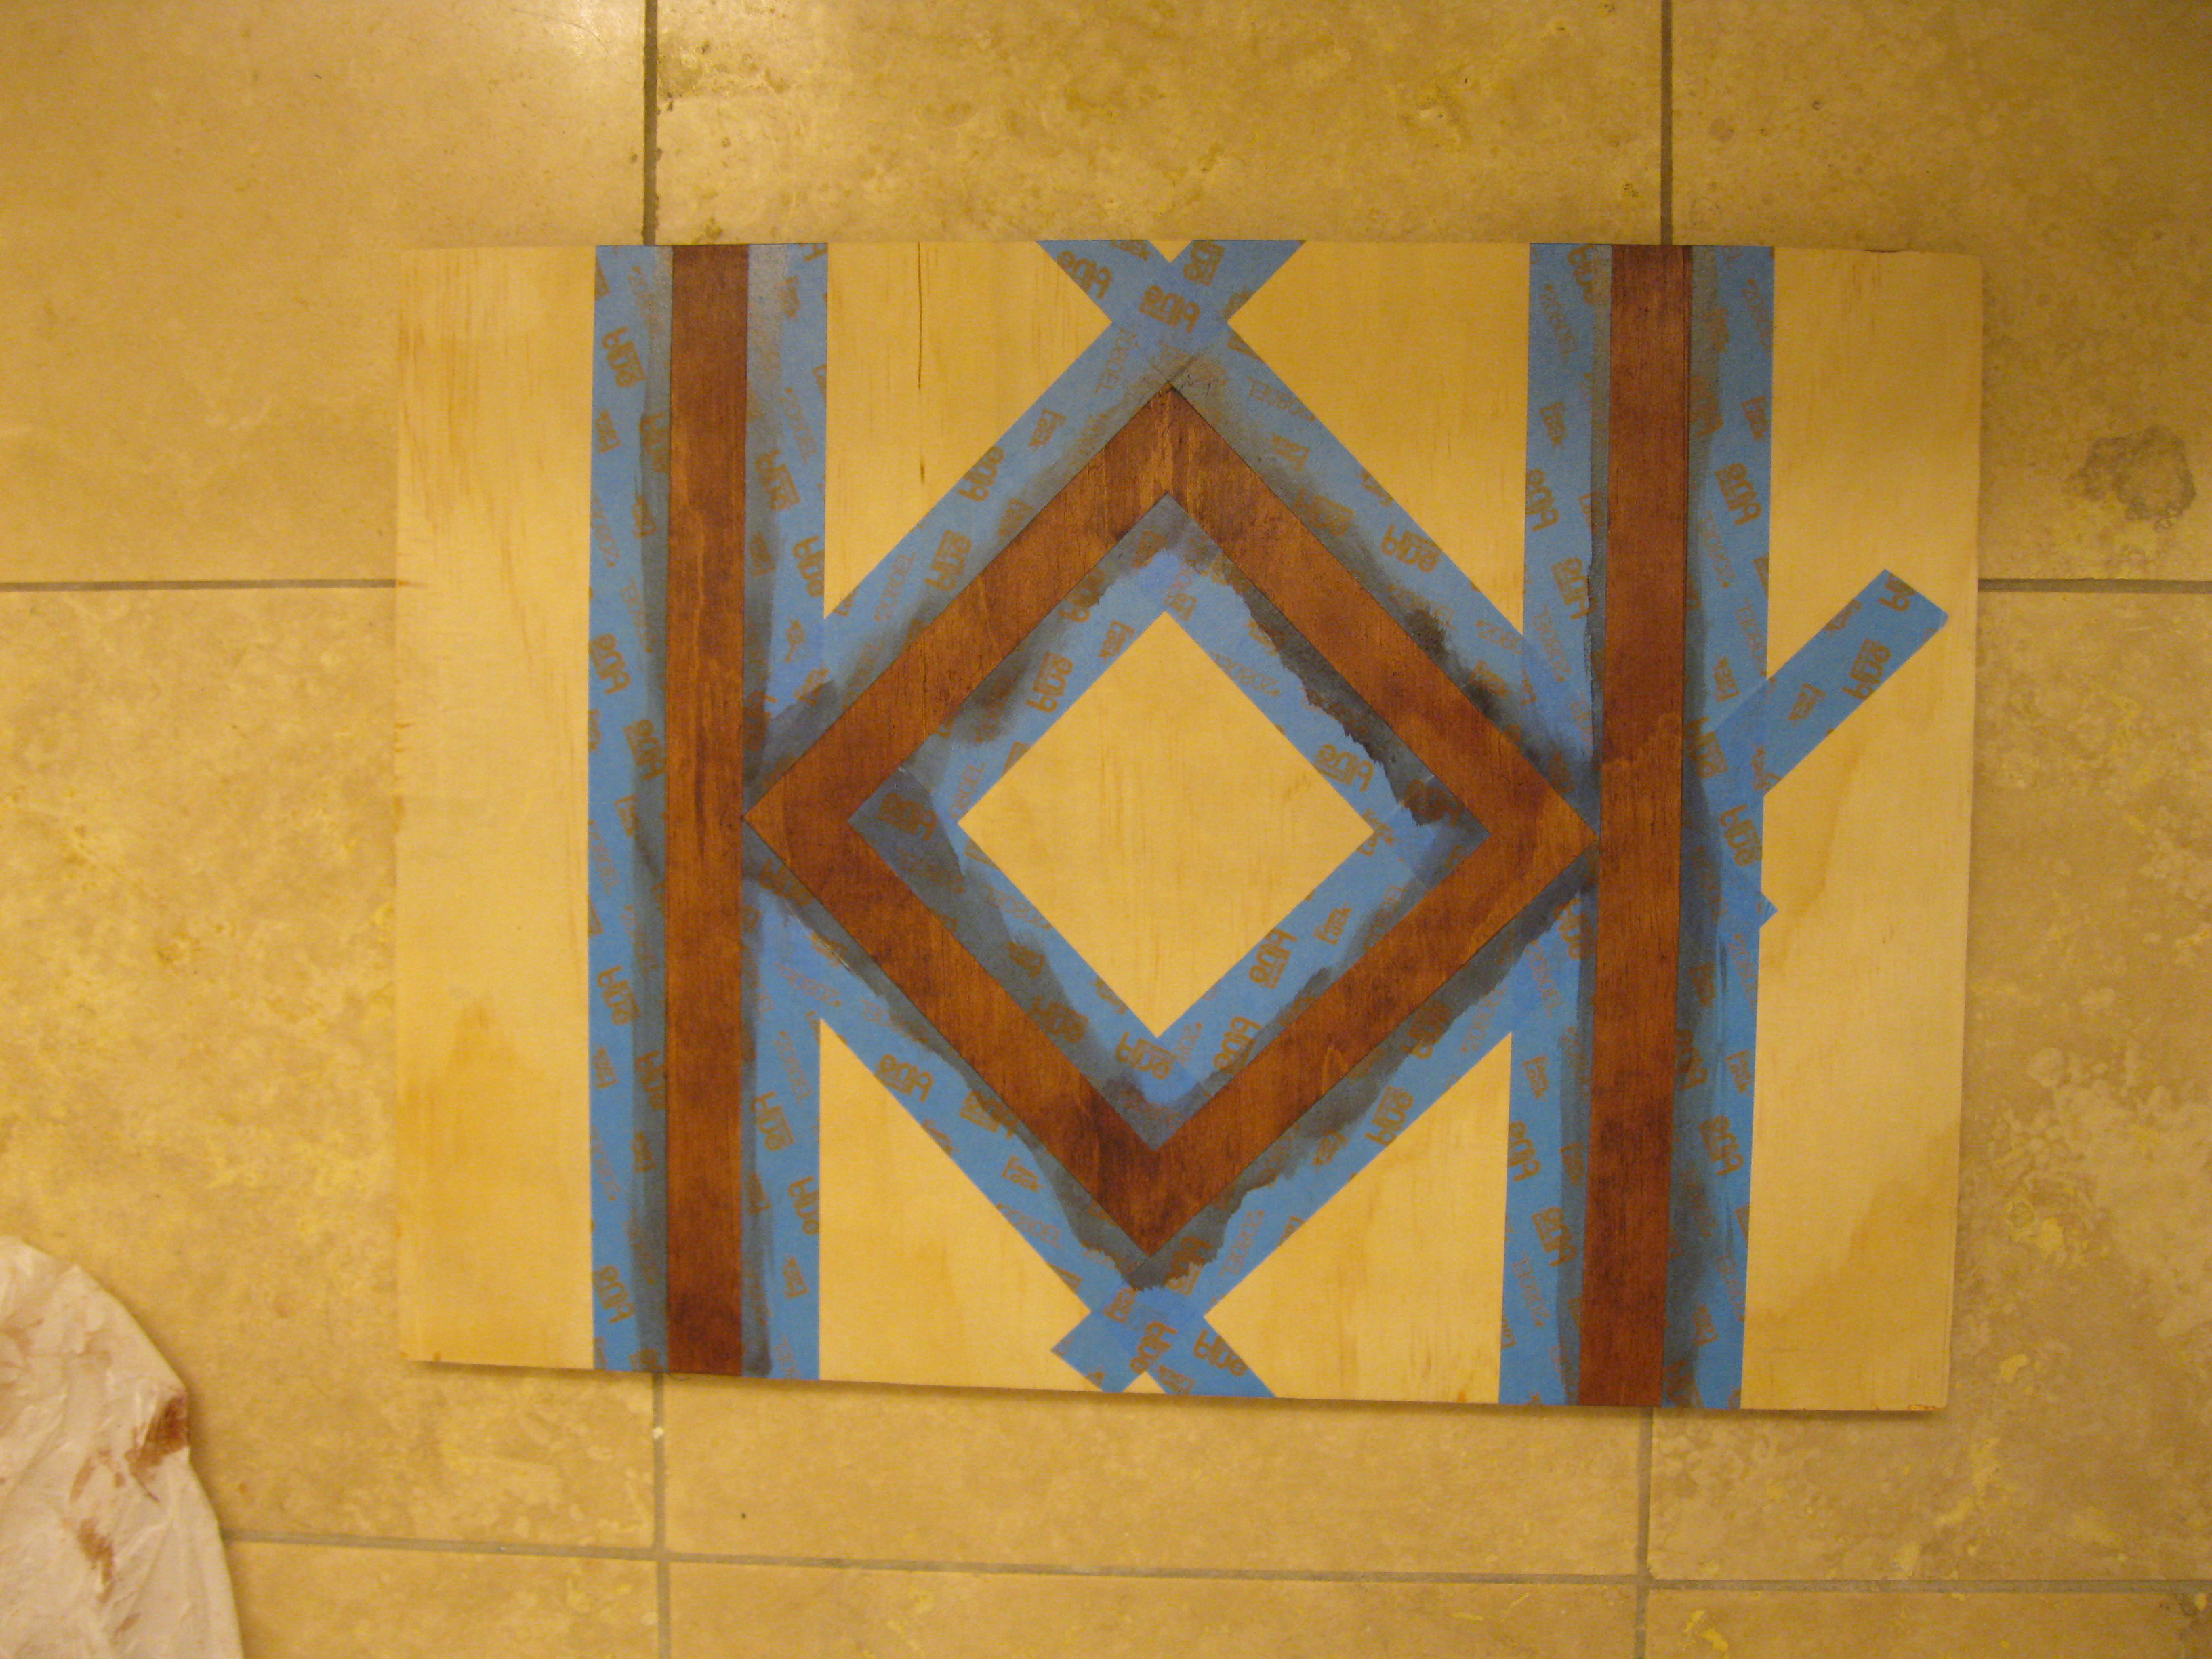 Picture of Staining and Decorative Motifs